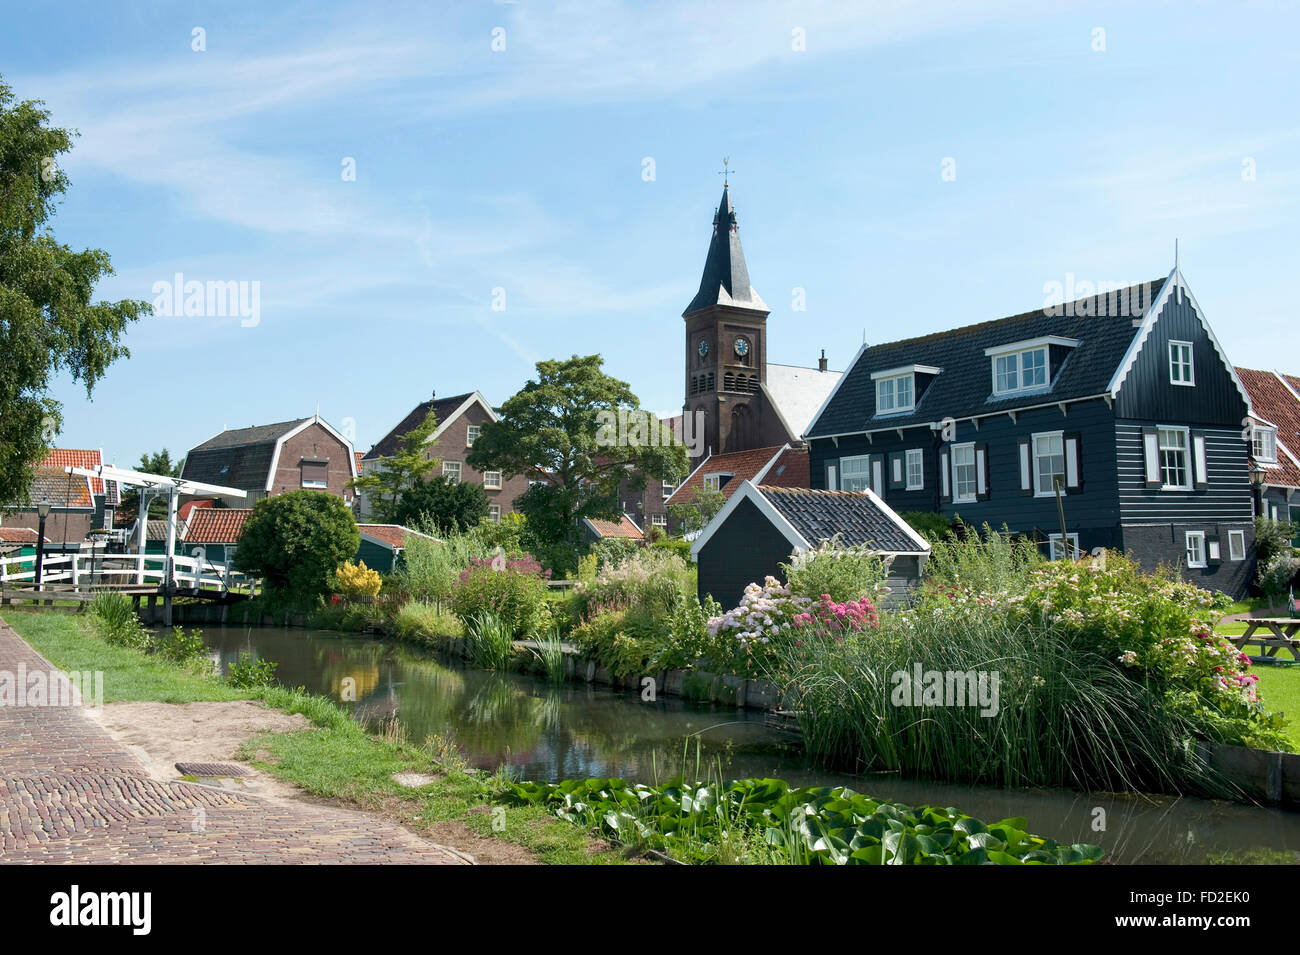 View at the old fishing village   of Marken in the Netherlands - Stock Image